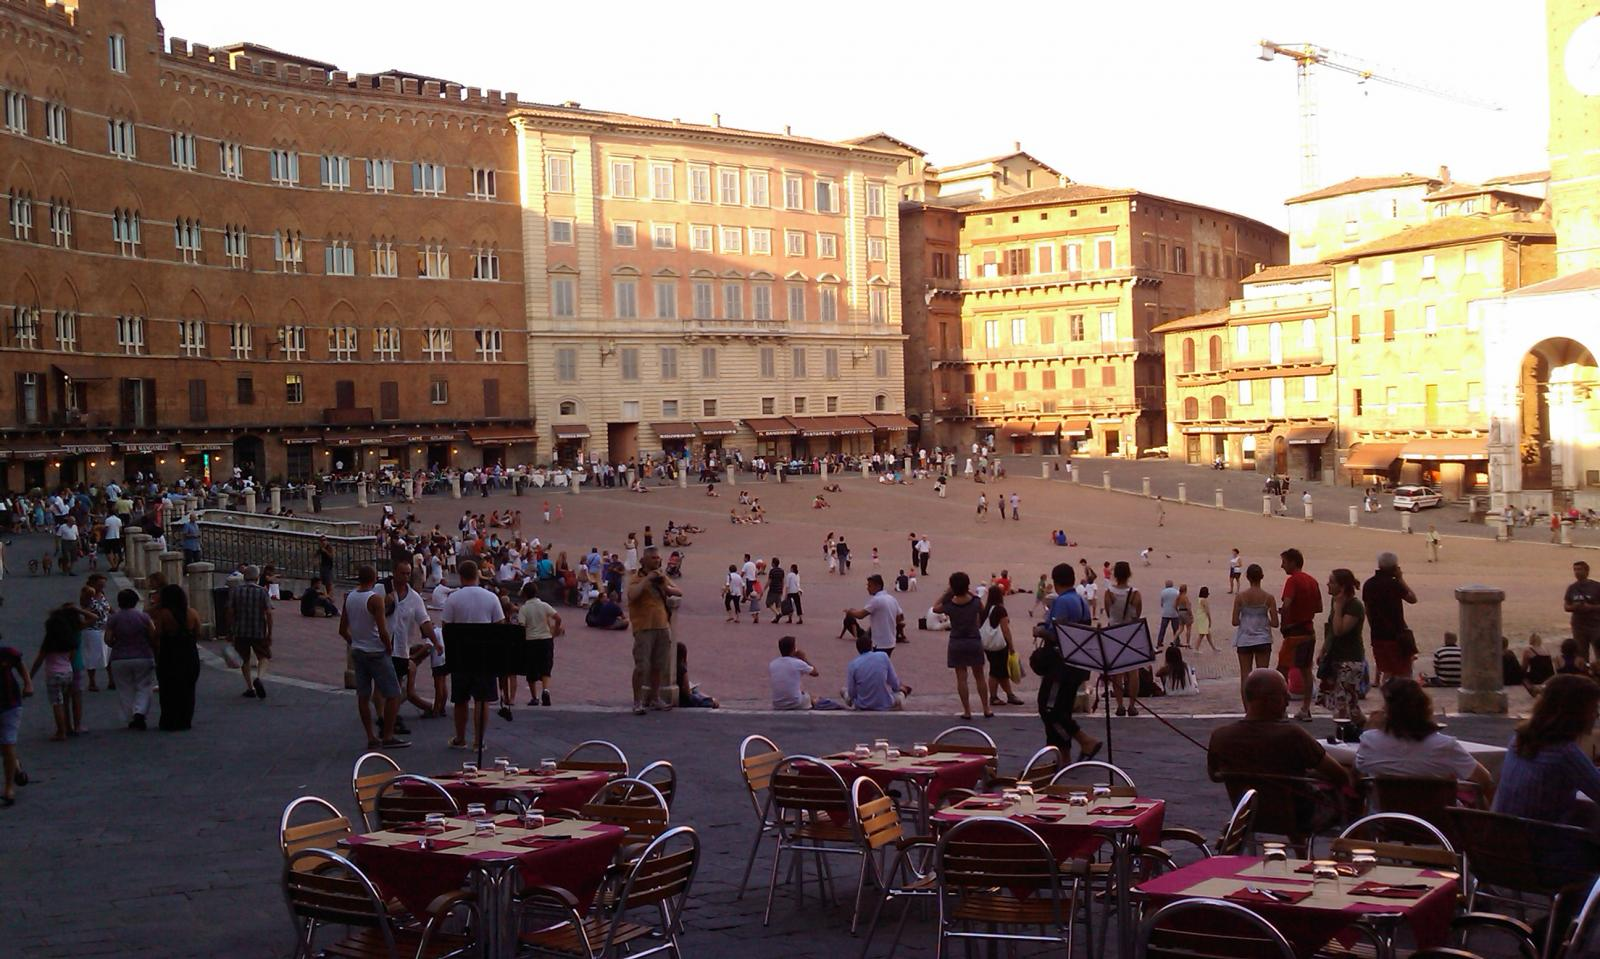 Siena - Piazza del Campo (we missed Il Palio just by a few days)